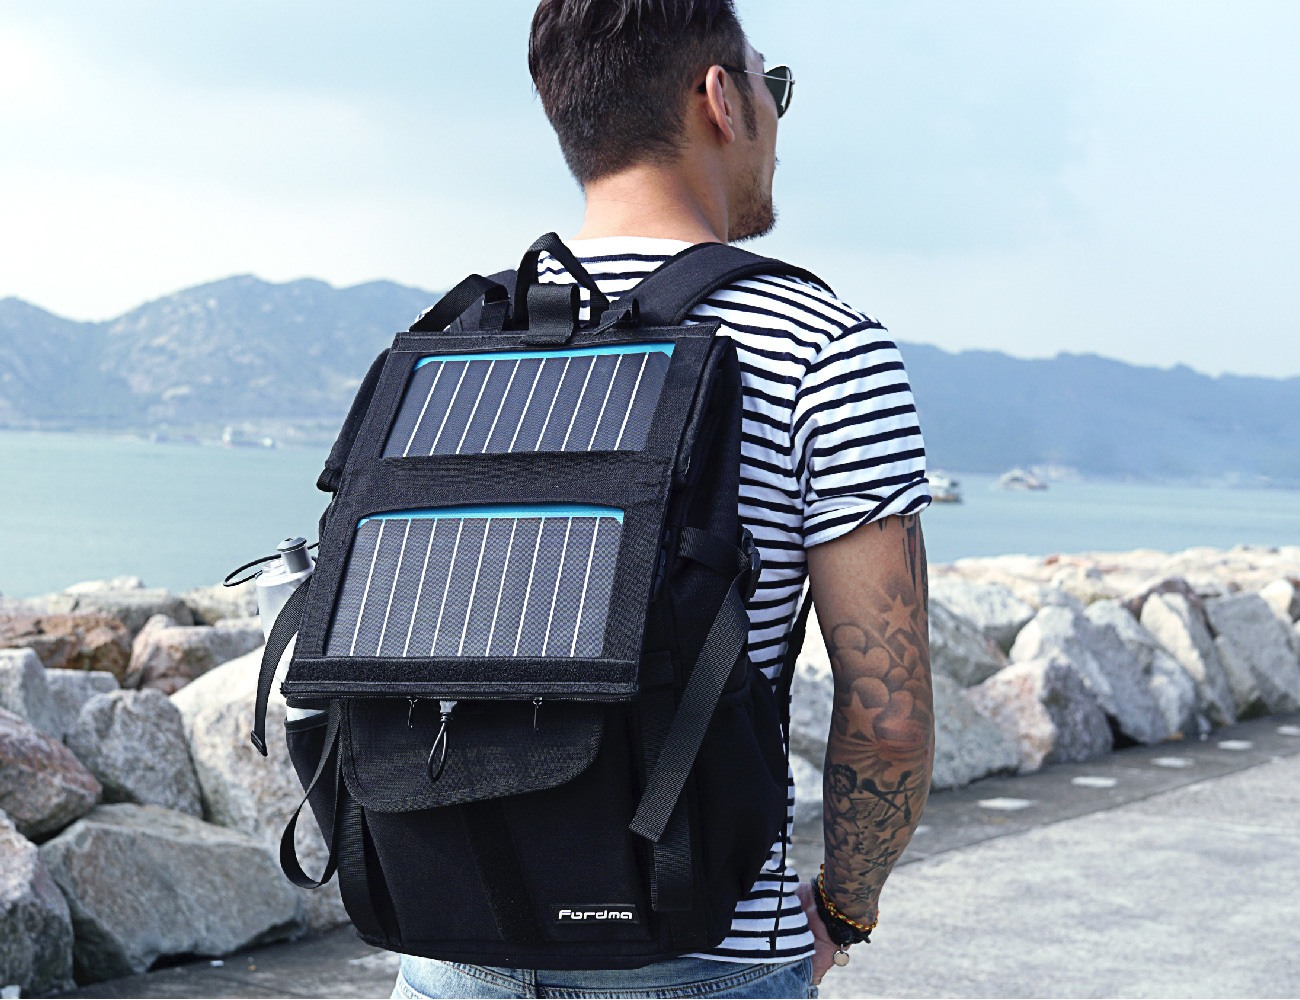 WALLY 2 – The World's Coolest Commuter Solar Power Backpack